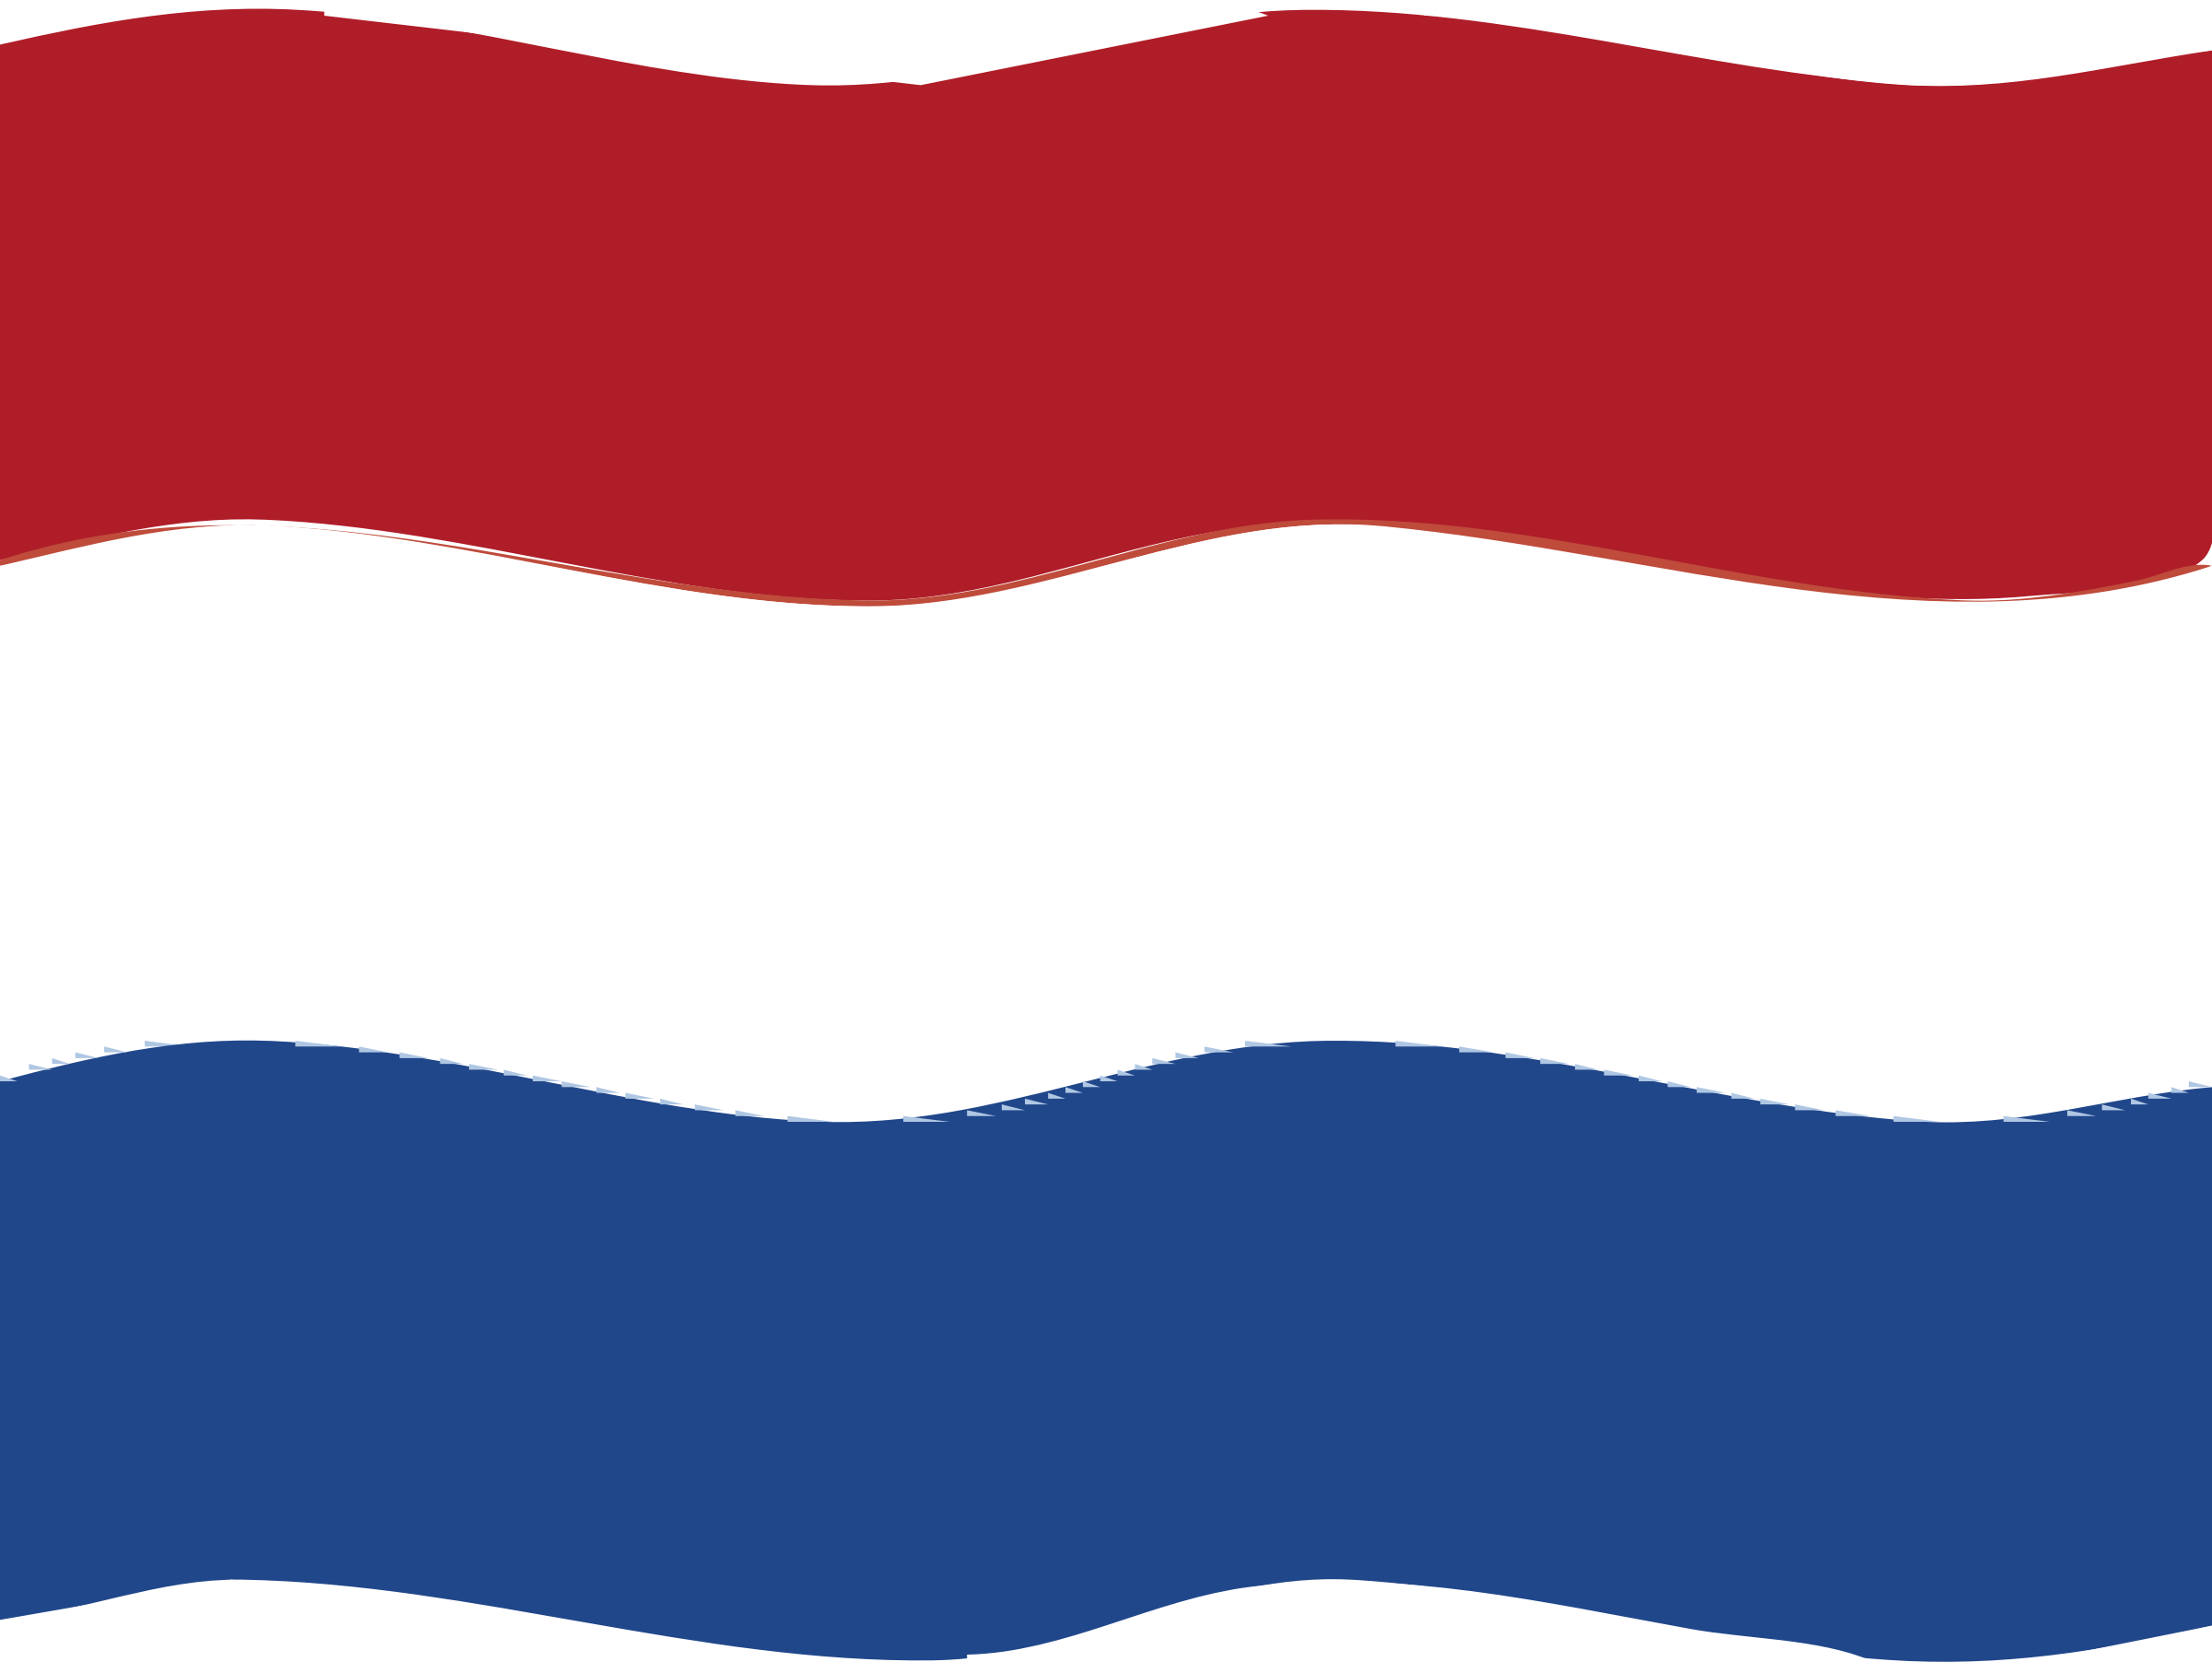 Flag of Netherlands wave by Joesph